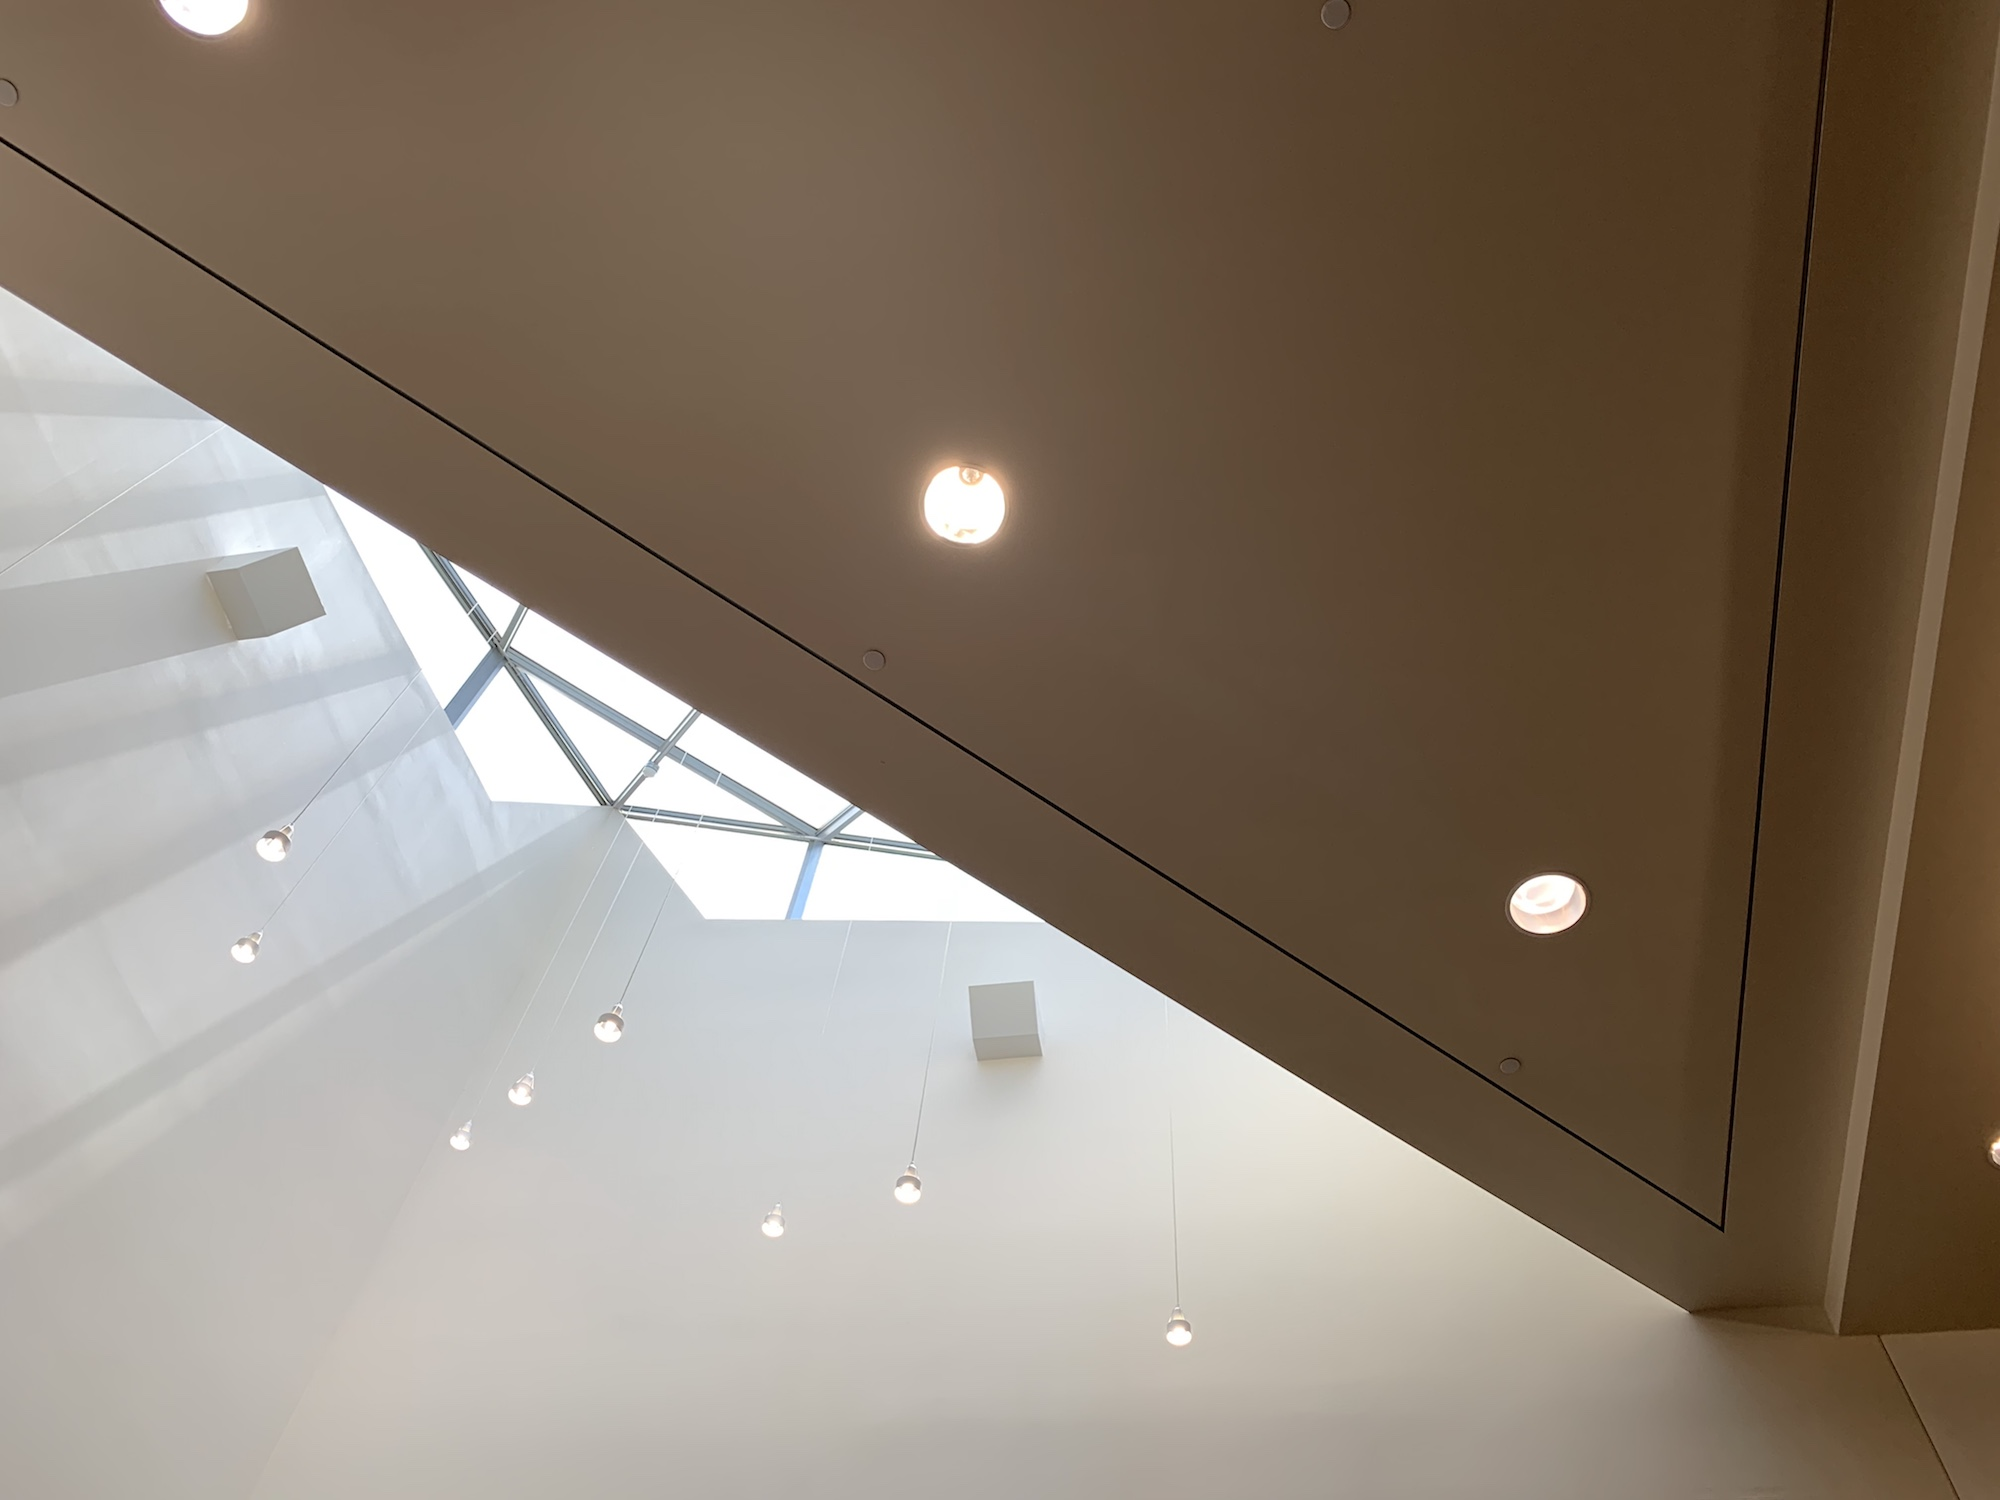 Another view of the skylight above some work desks.